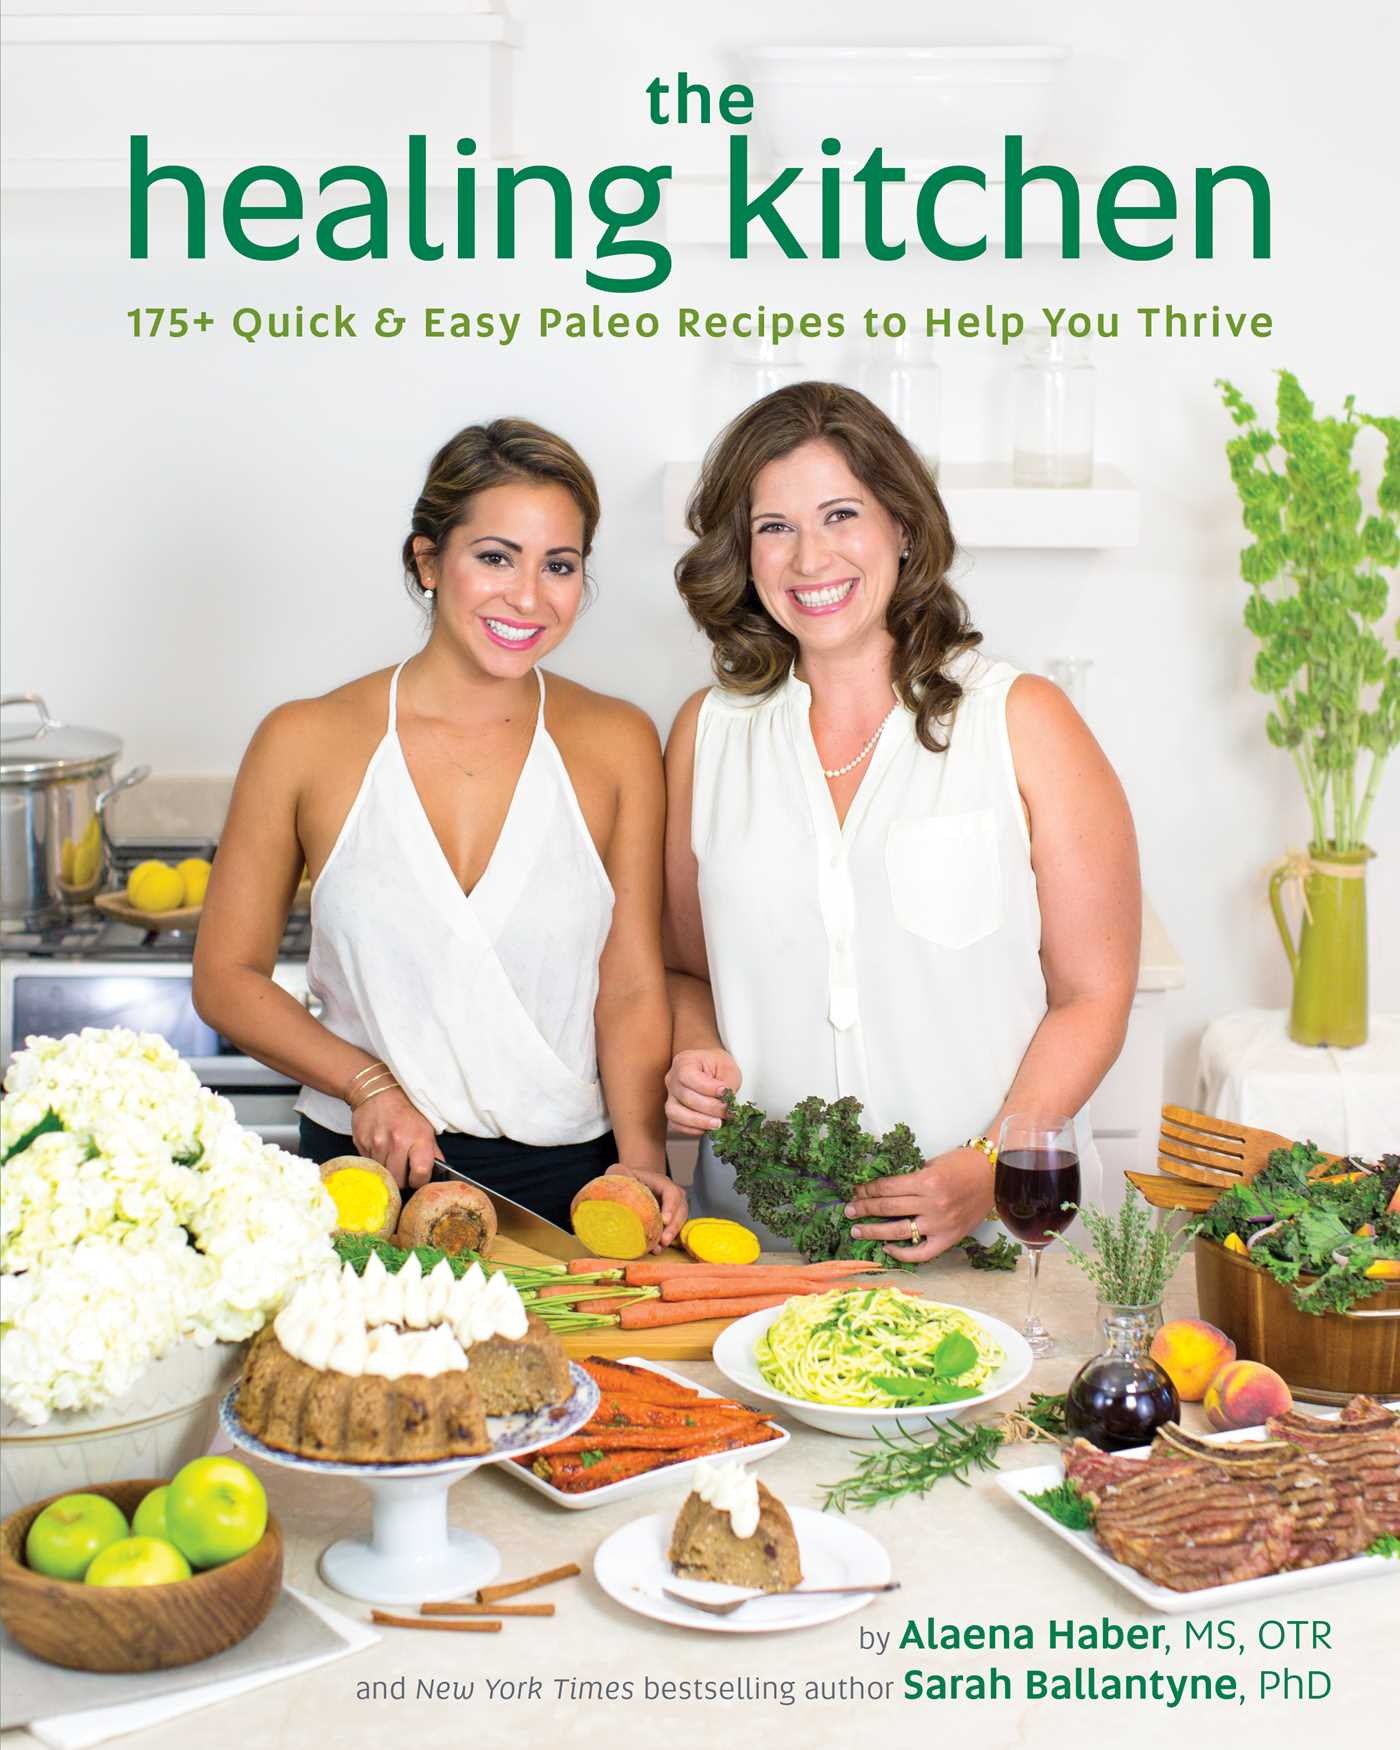 The Healing Kitchen | Book by Alaena Haber, Sarah Ballantyne